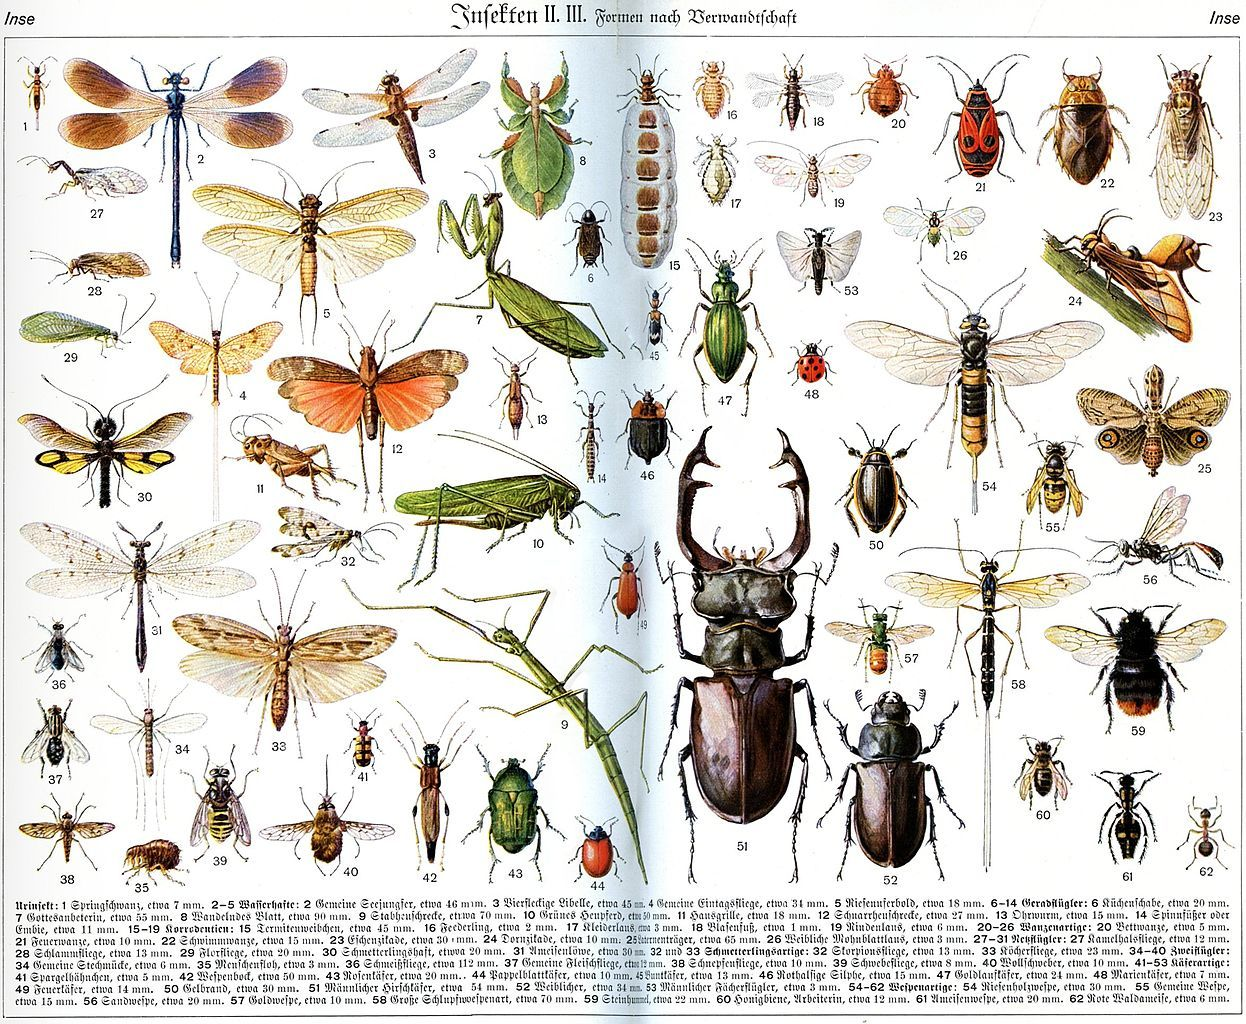 Insects From Der Neue Brockhaus Vol 2